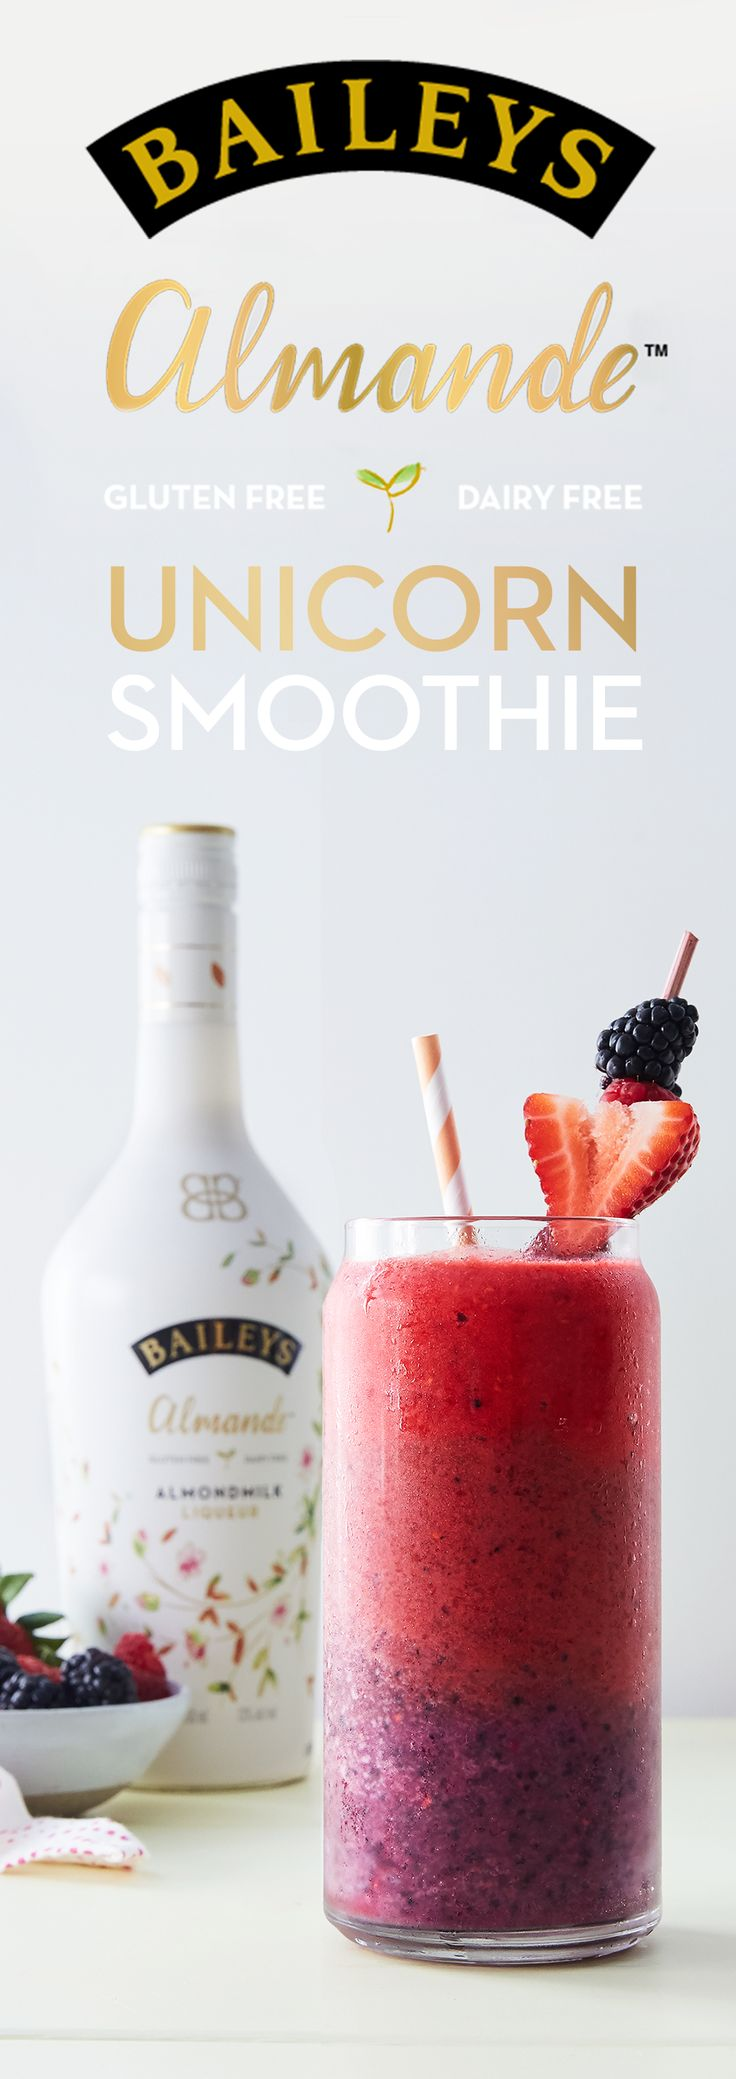 Summer is coming. Have some fun with fruit and whip up this light-tasting Unicorn Smoothie by Purewow, the perfect cocktail for hosting any party! This recipe is dairy free, gluten free and vegan!